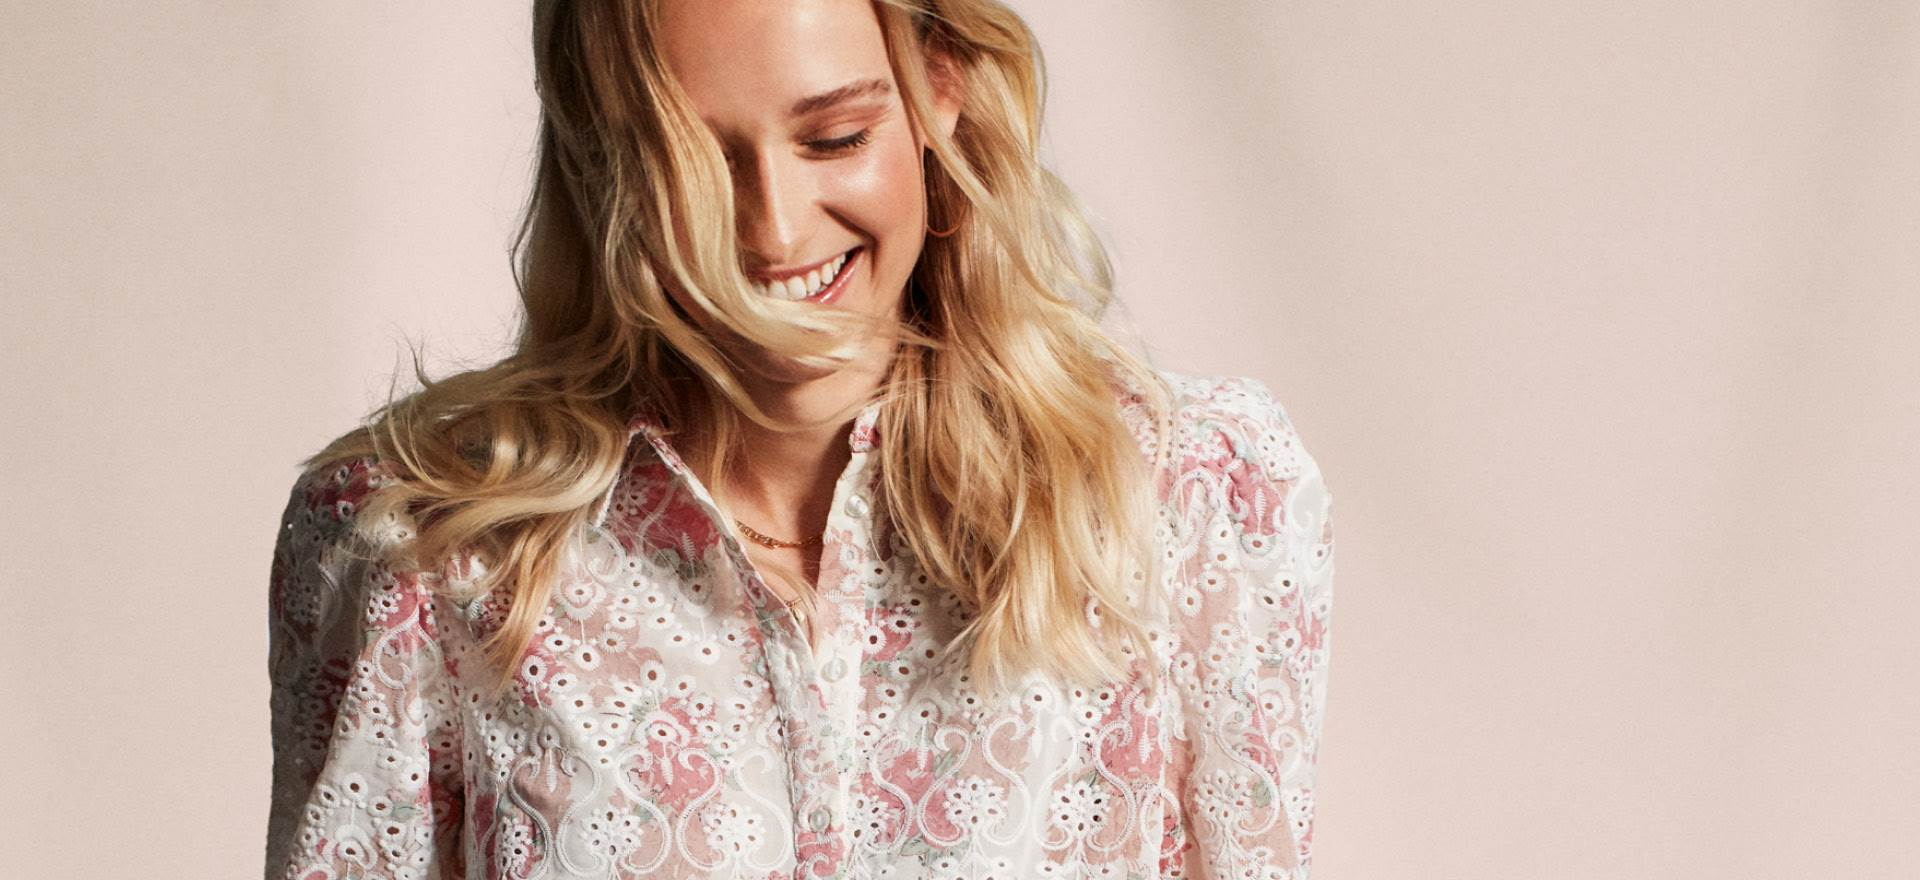 Marie Philippe blomsterbluse med rosa blomster